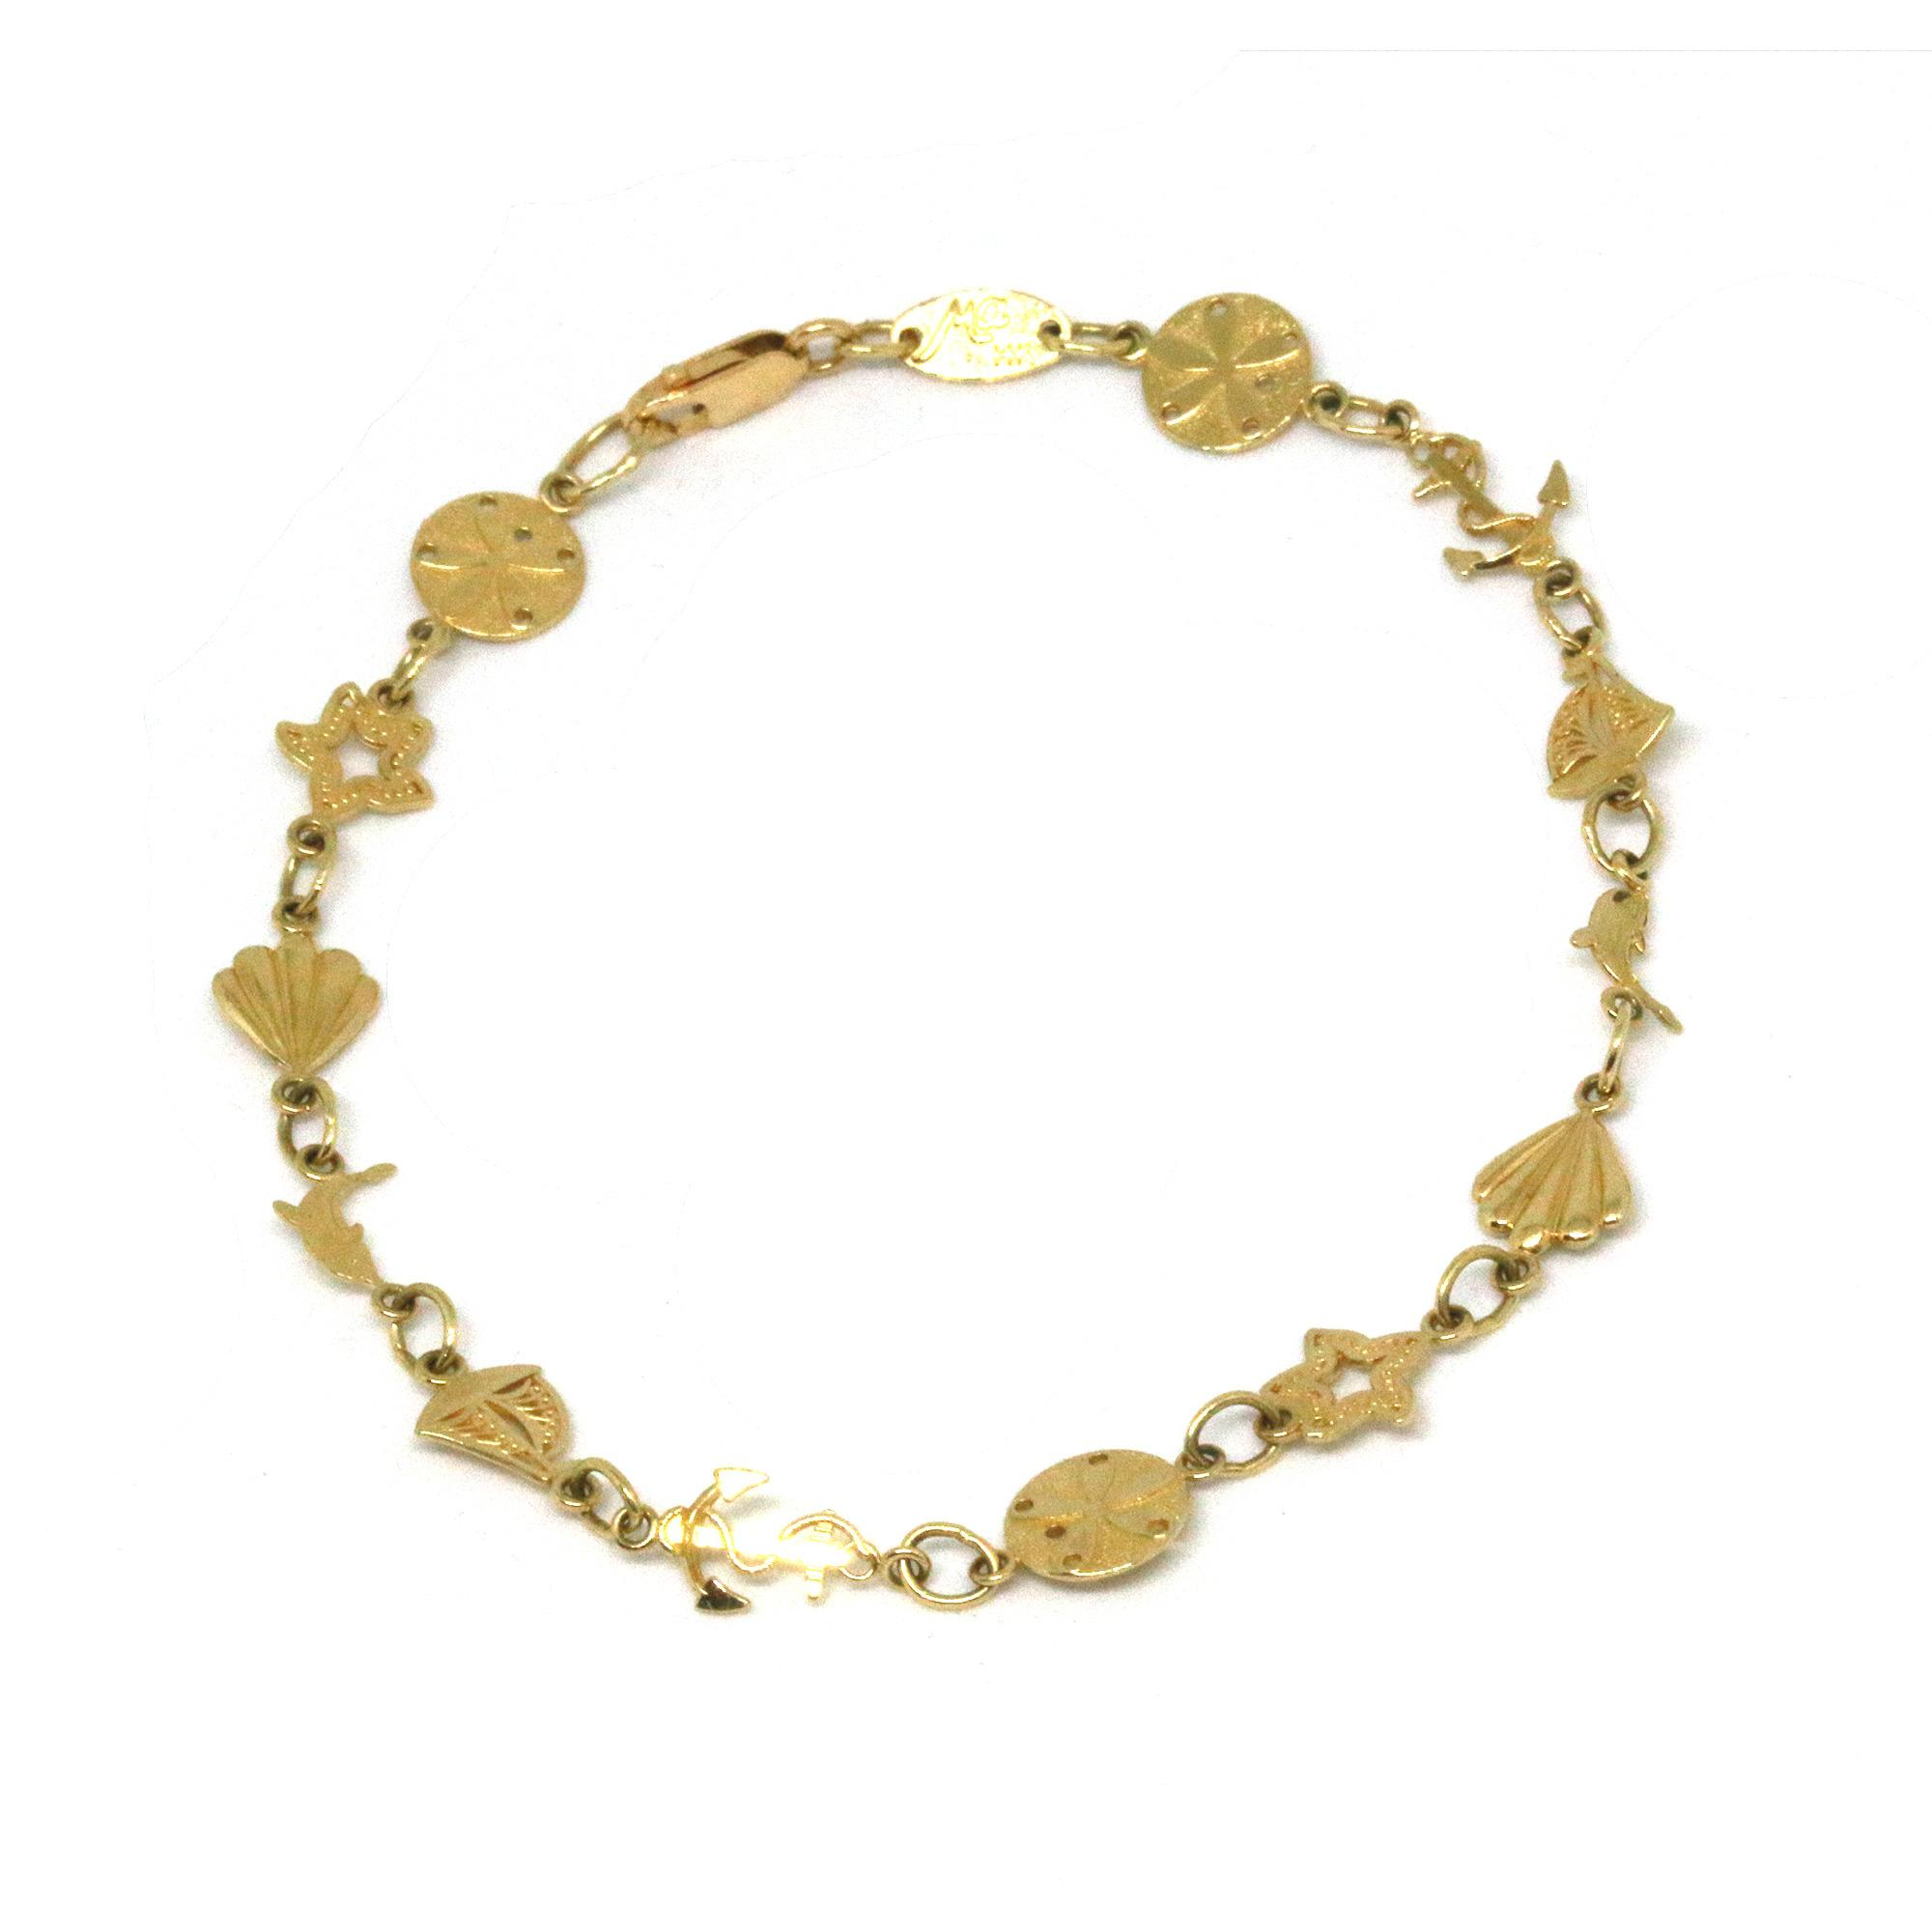 gold designs in design bracelet caymancode bracelets man mens